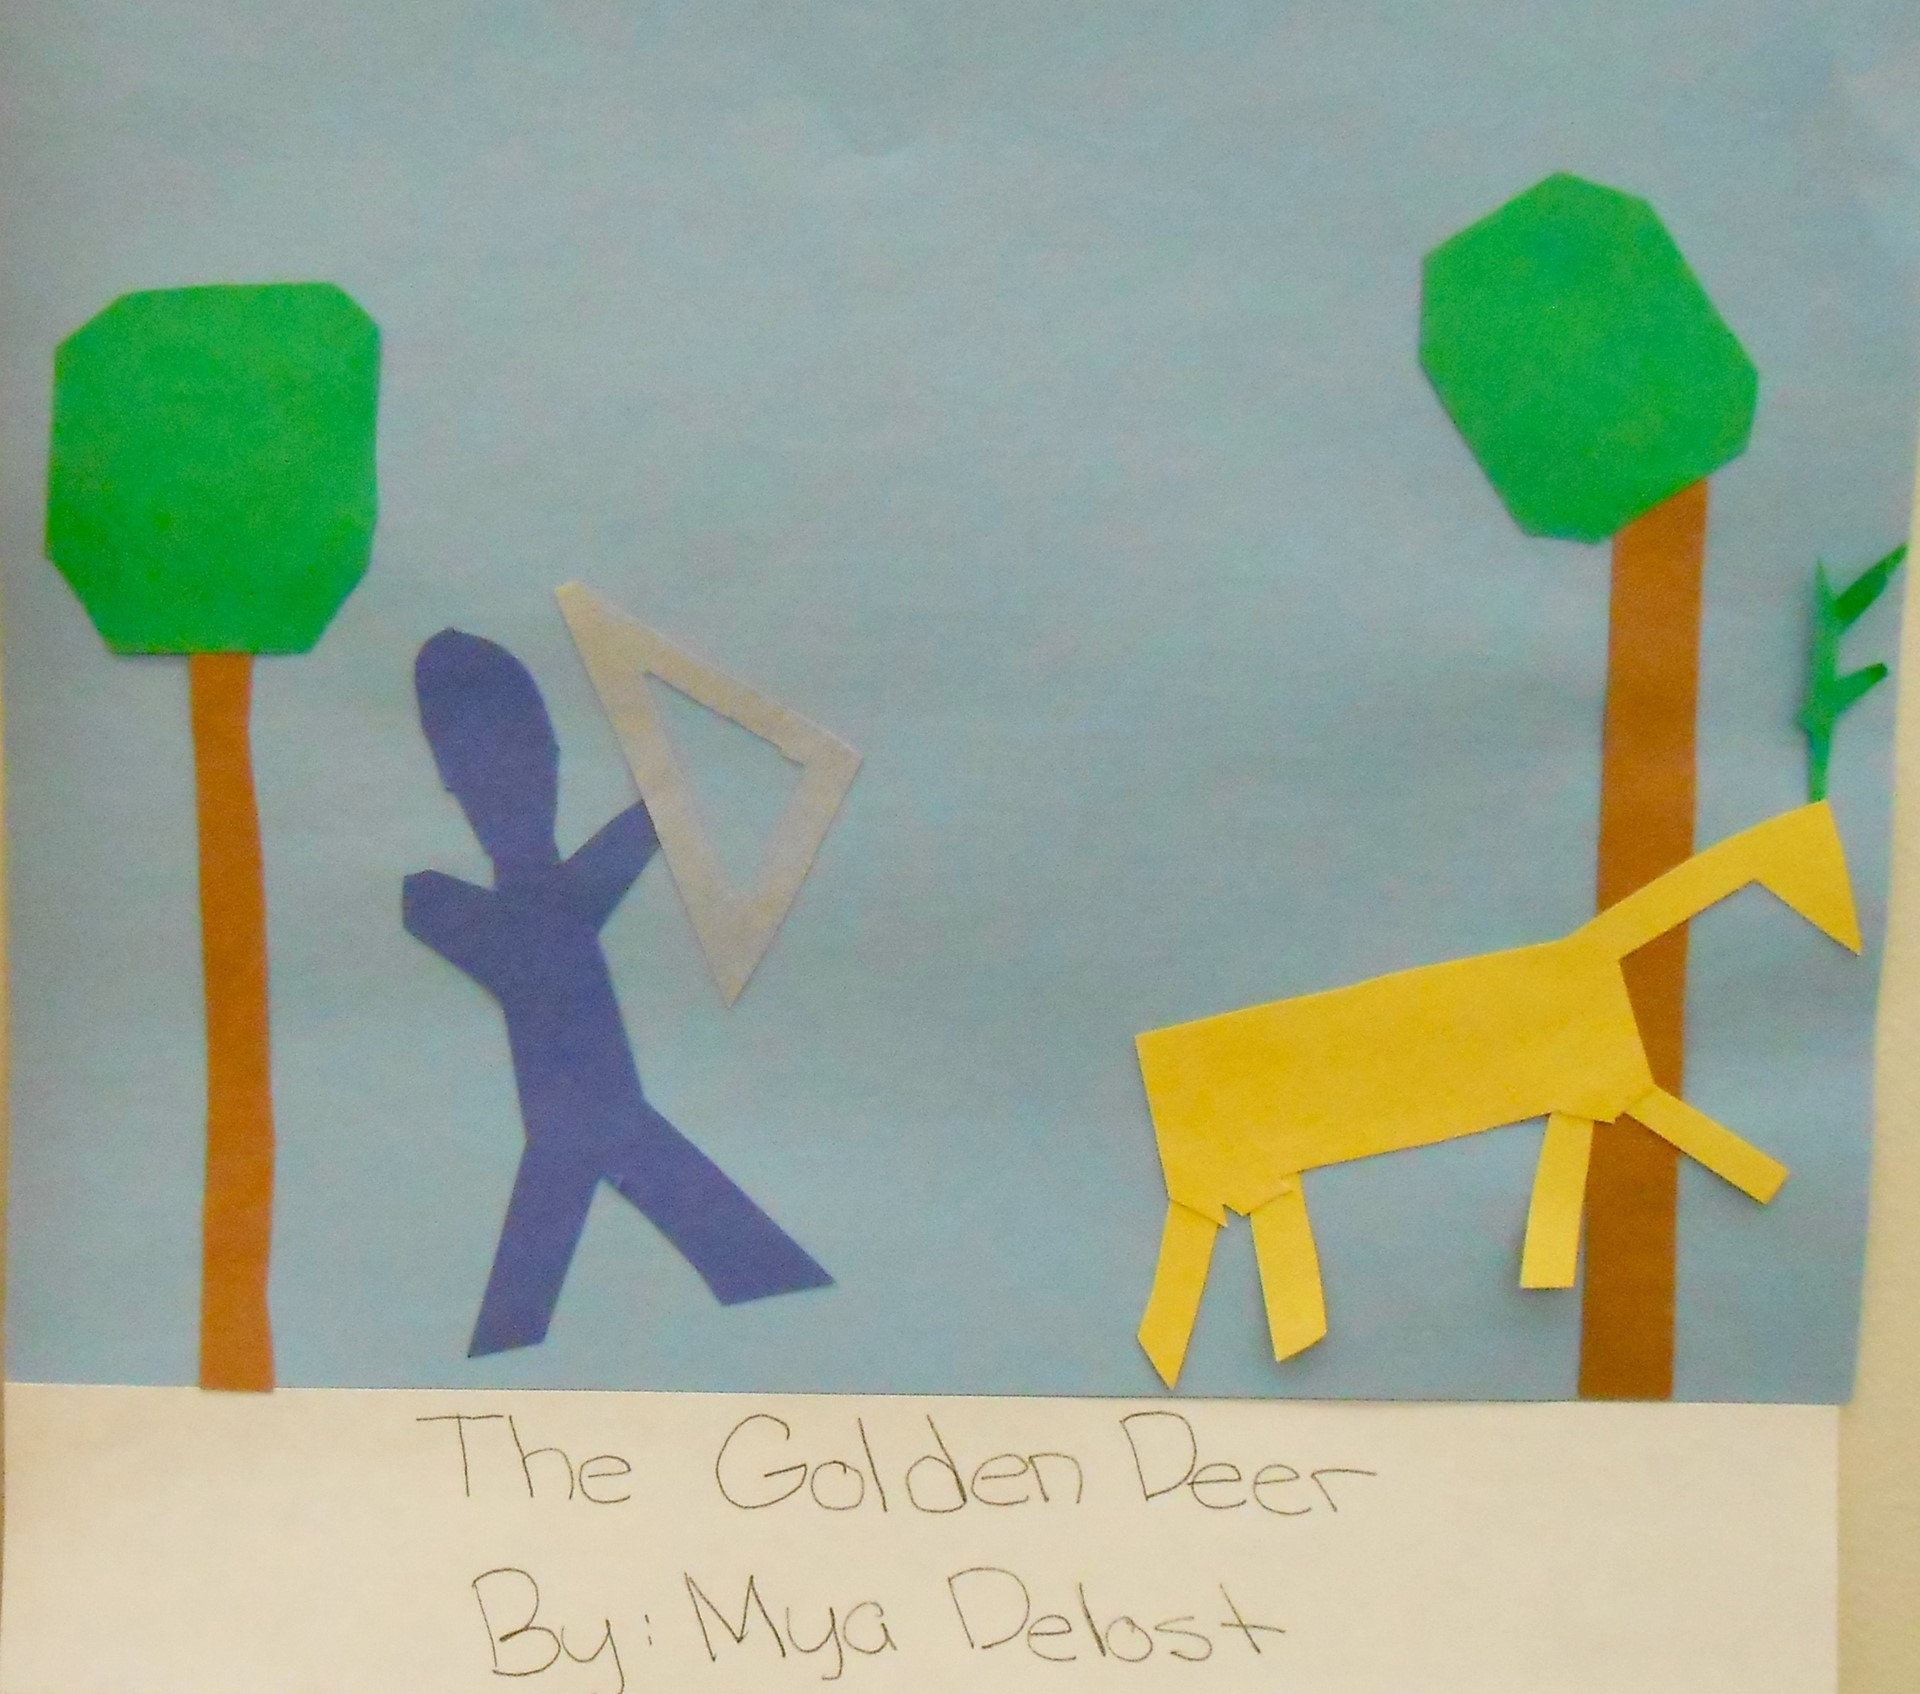 Illustrating Ramayana in the style of Matisse cut-outs.